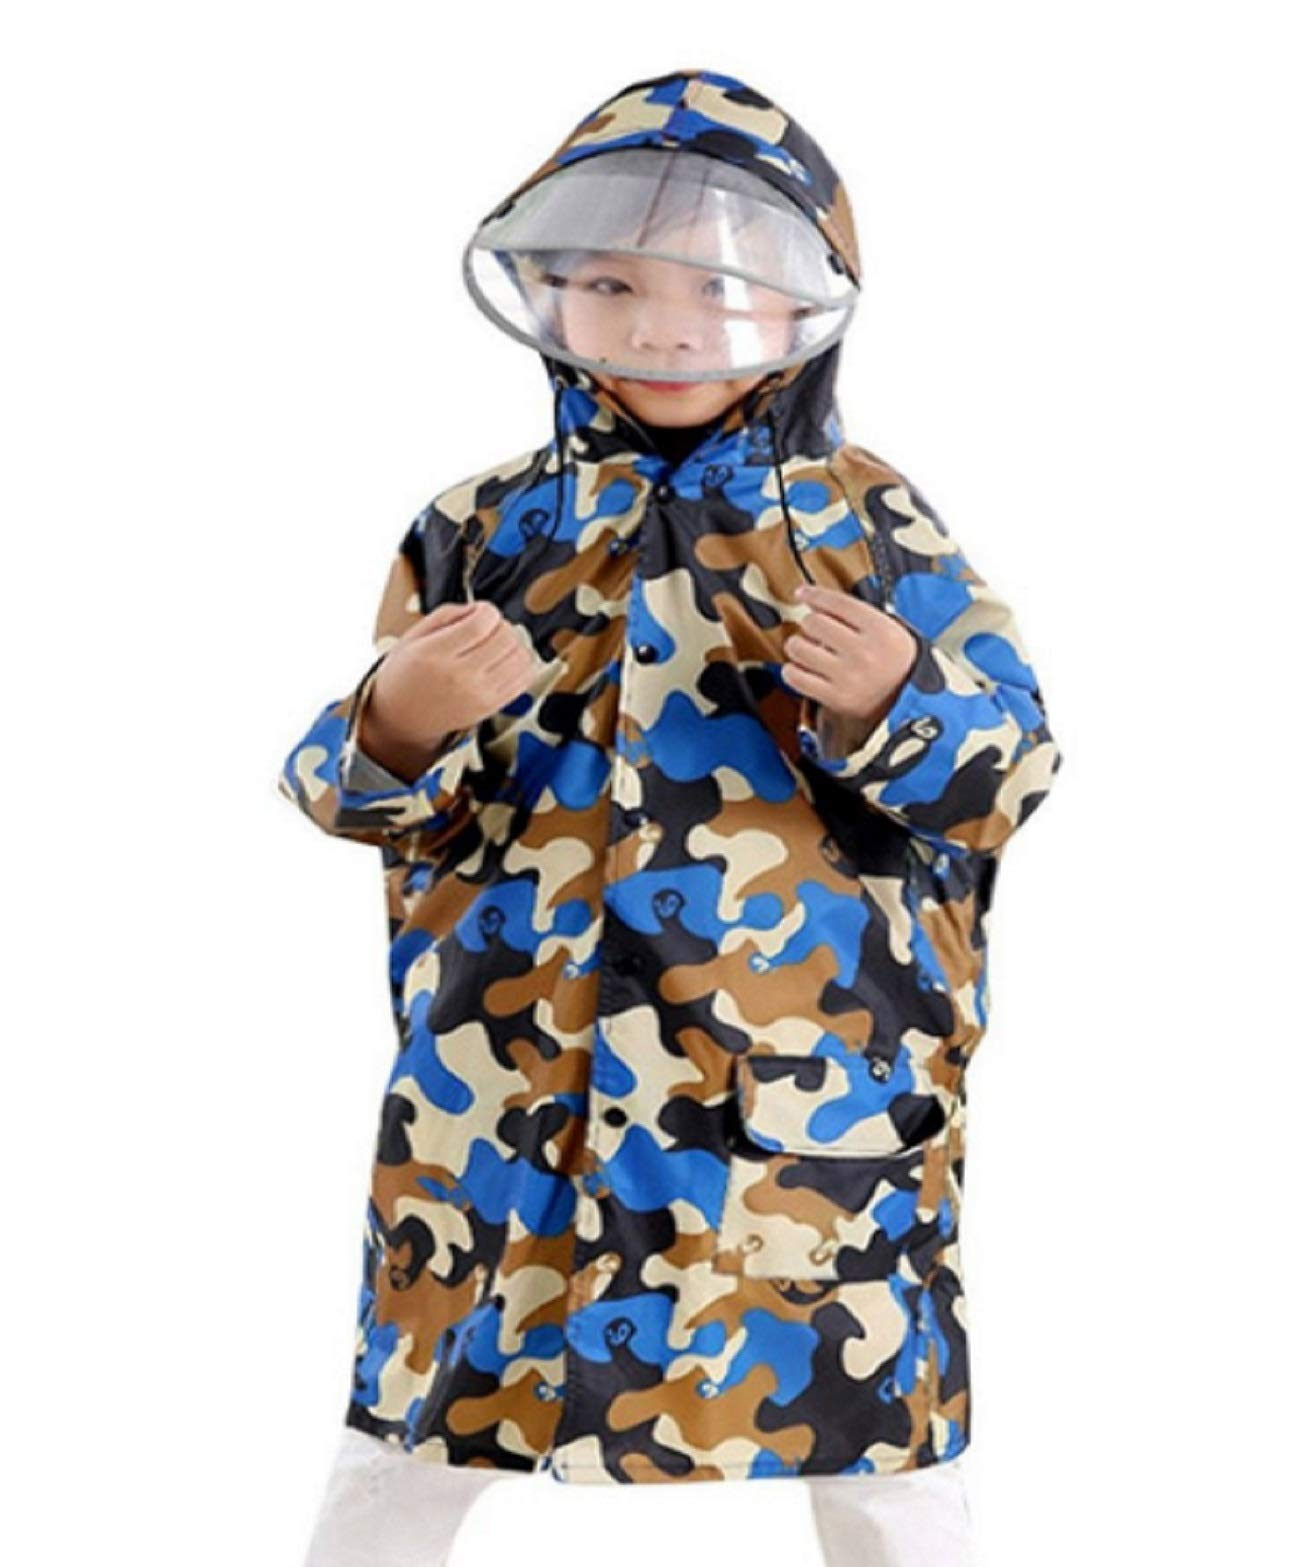 Irima-ya Kids Teen Girls Boys 【Colorful Camouflage】 Hooded Raincoat Jacket Raincoat Rainwear School's Back Cover  with Storage Bag (Camouflage blue) by Irima-ya